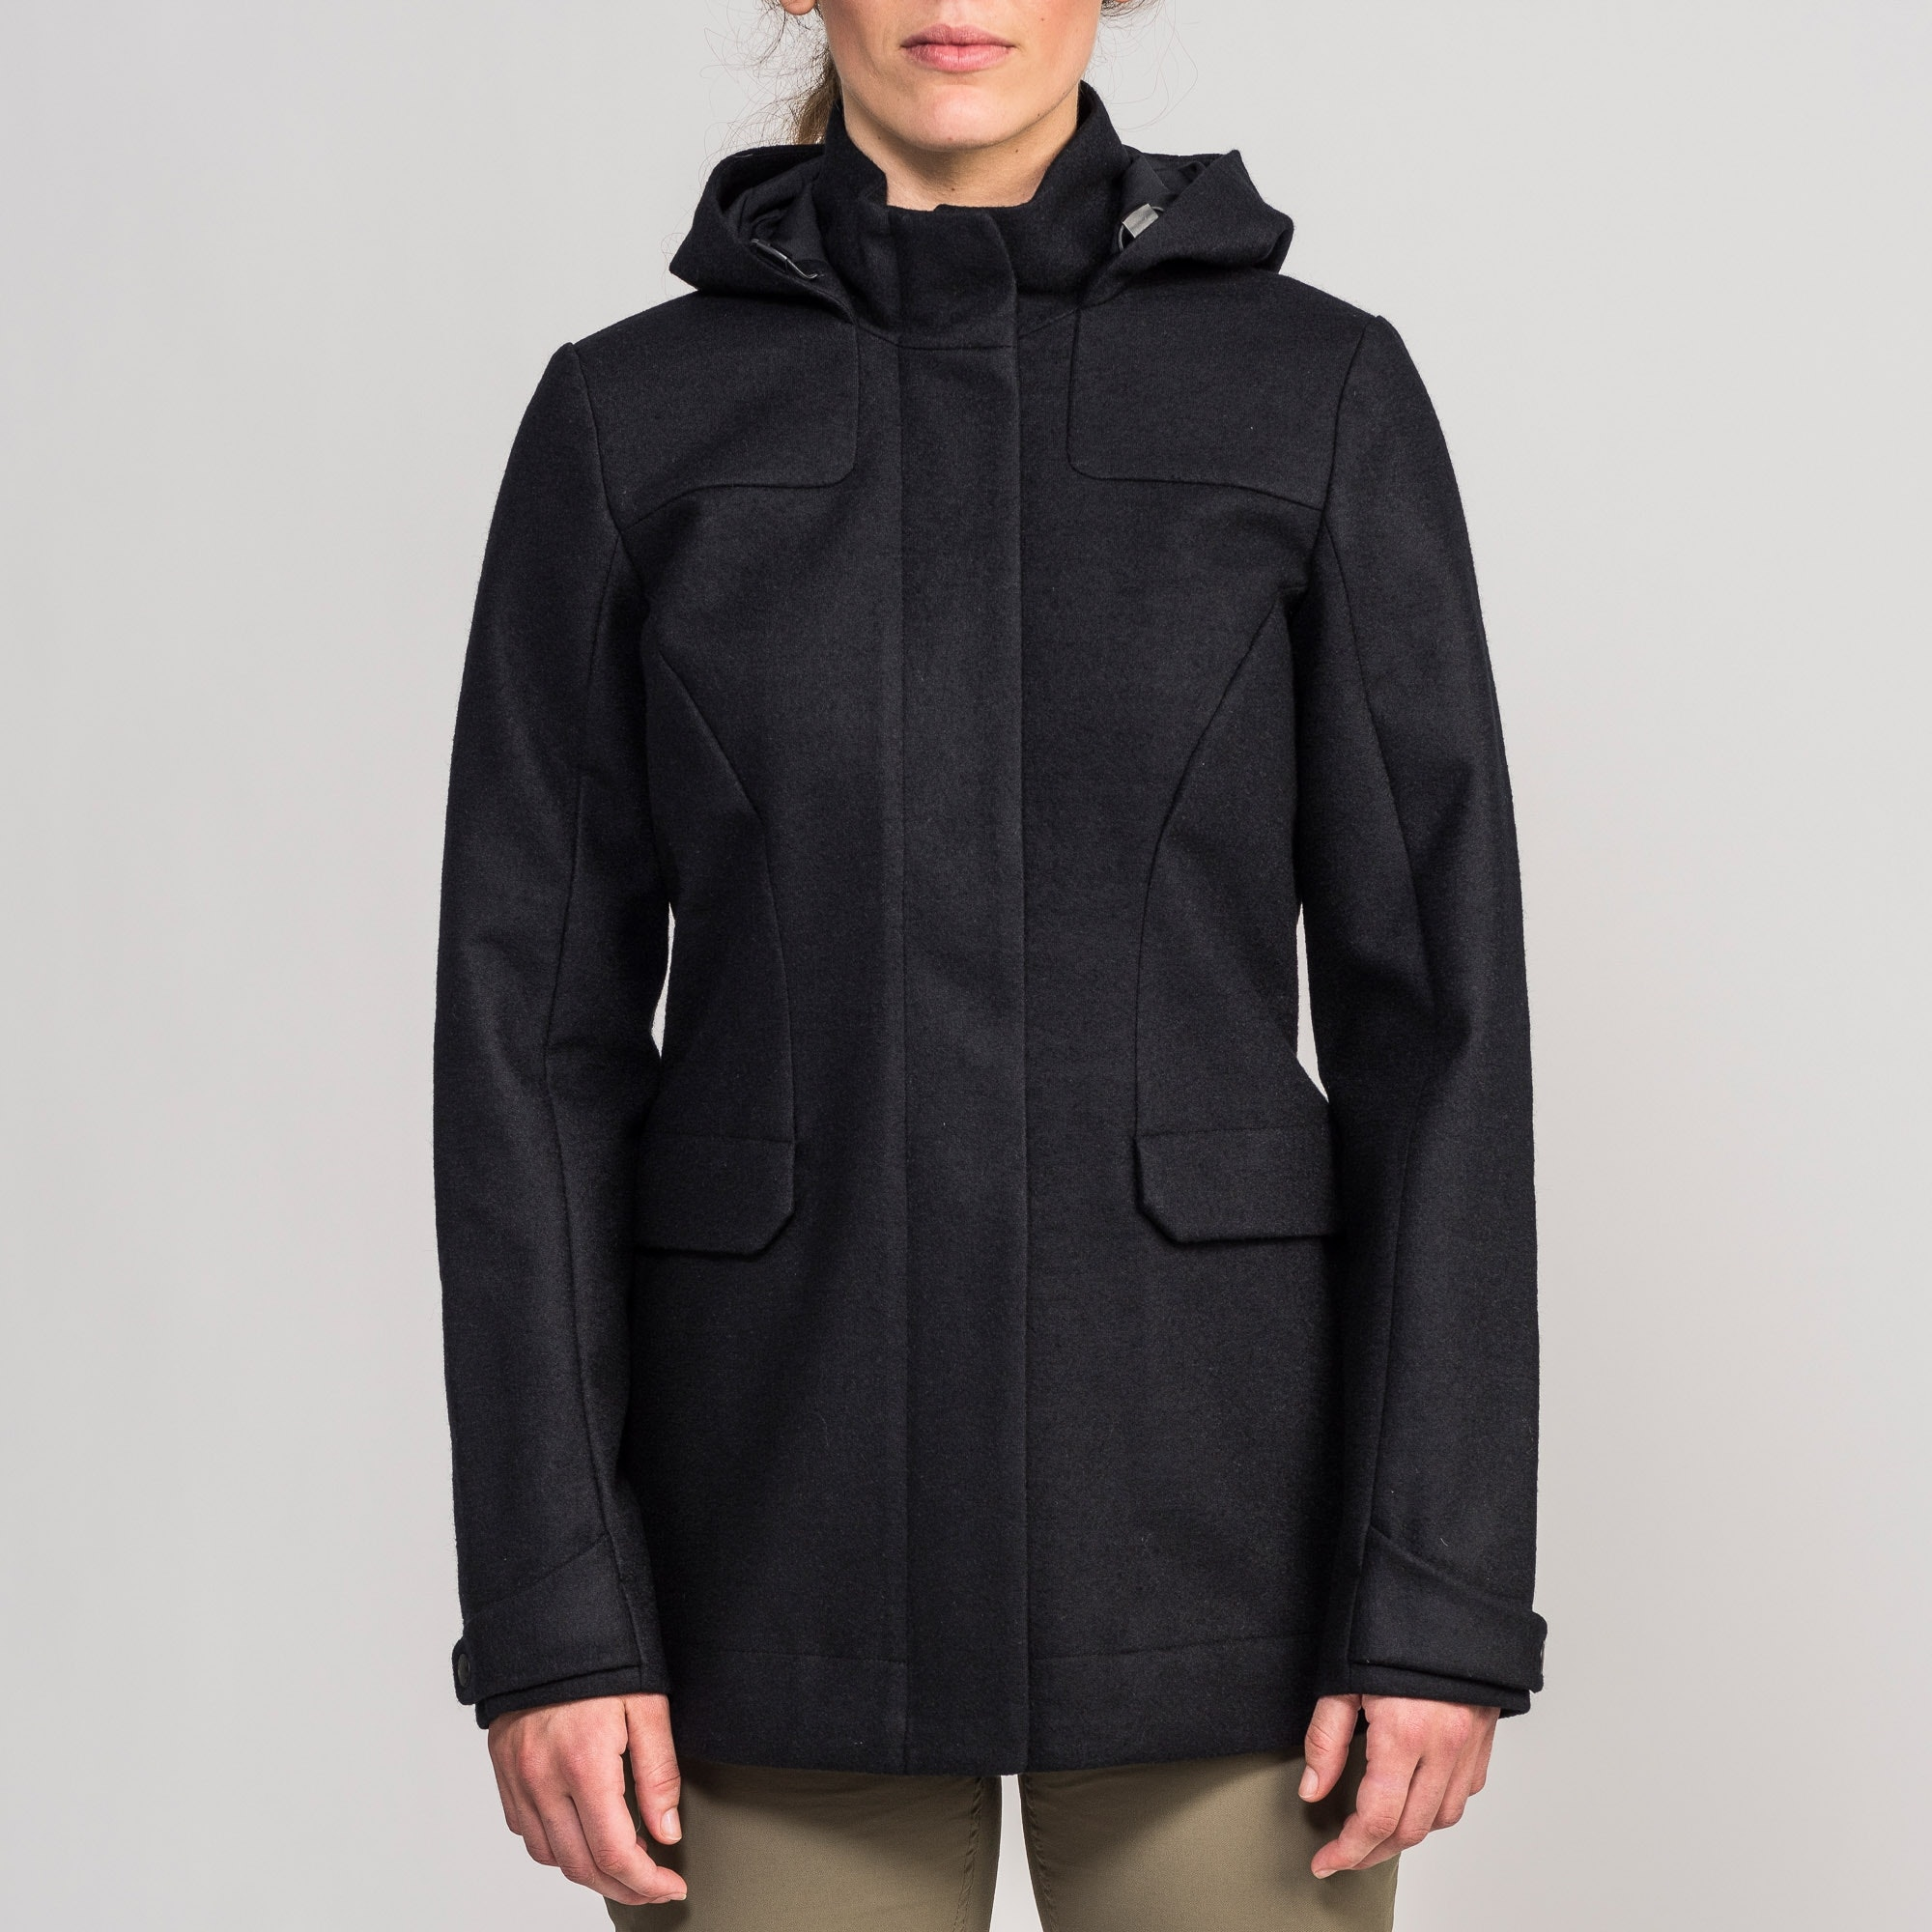 Relatively Plateau Women's Merino Coat v2 - Black QN09